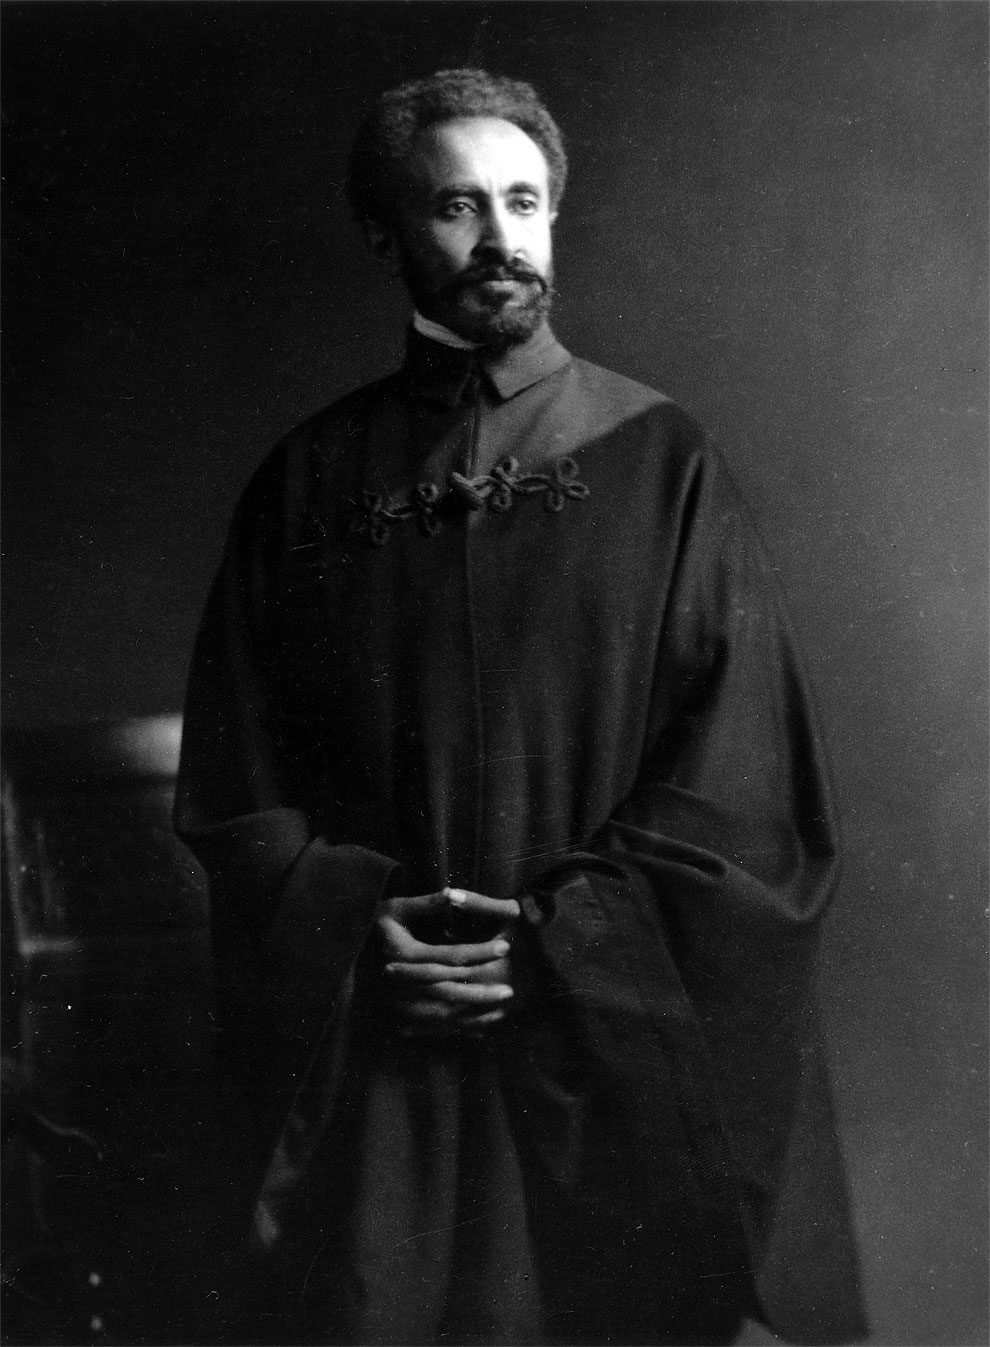 Stunning Photos Of Haile Selassie I, The Emperor Of Ethiopia